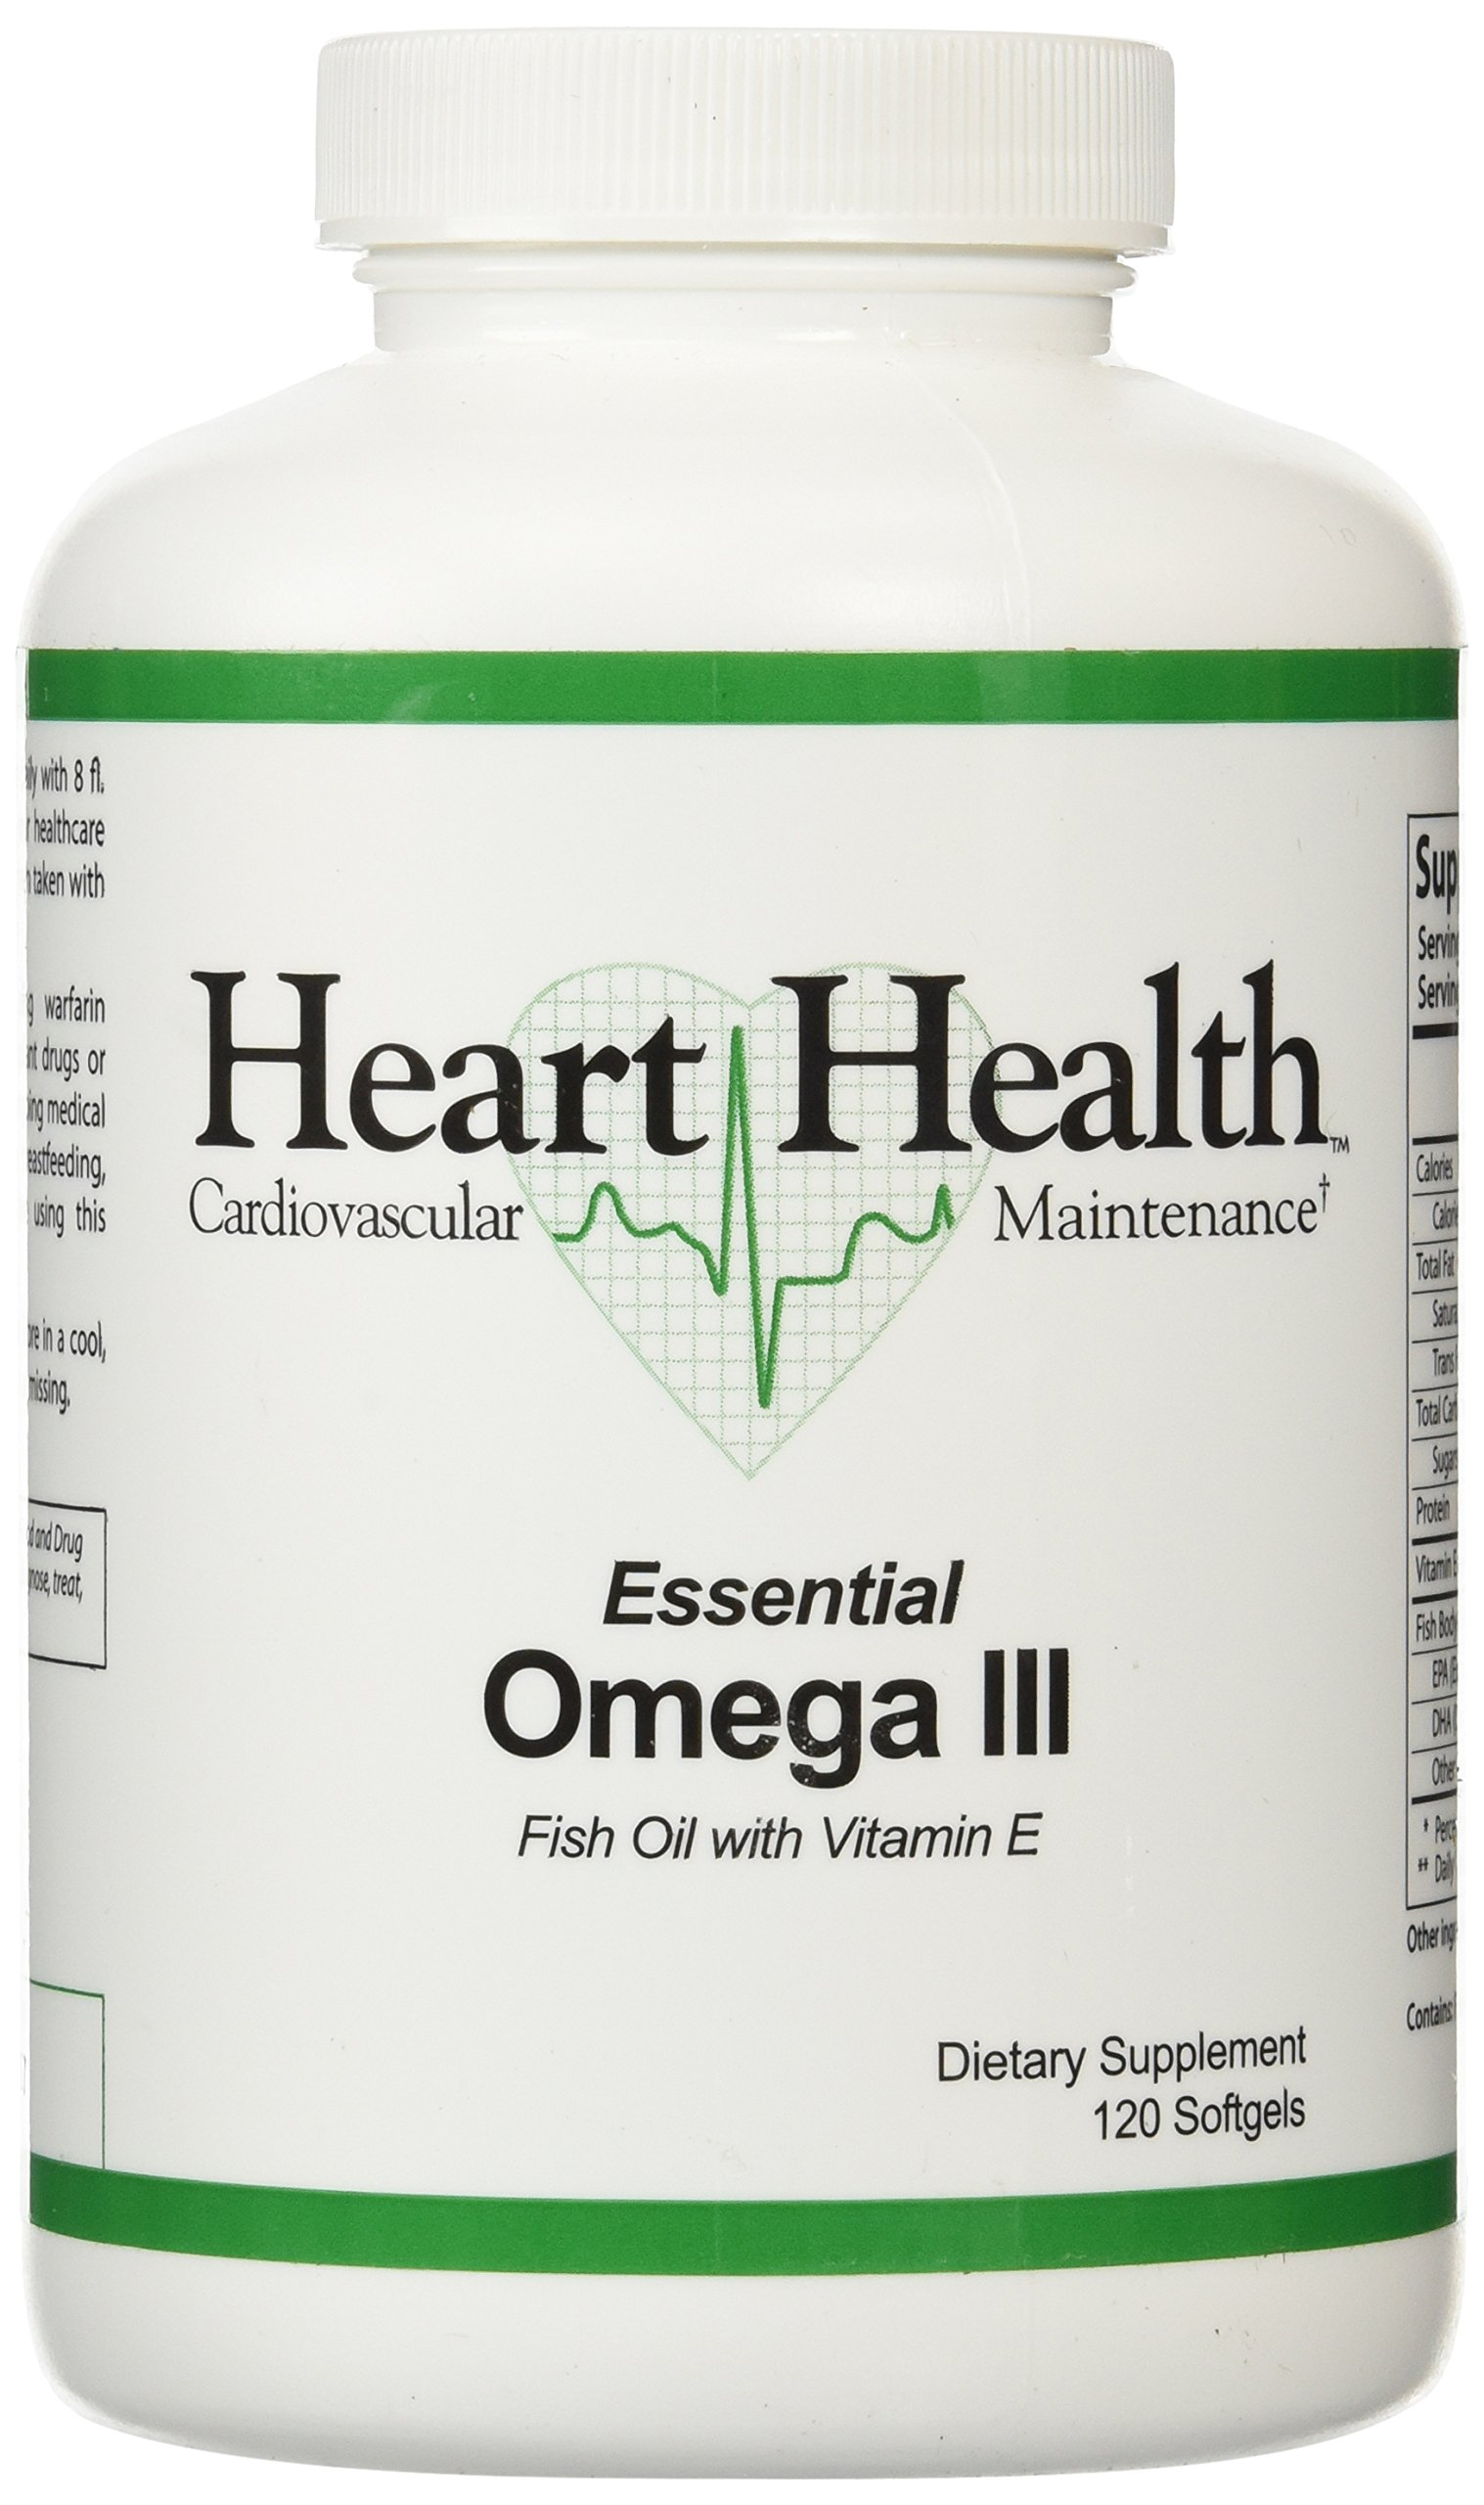 Heart Health™ Essential Omega III Fish Oil with Vitamin E Single Bottle - 120 softgels,(60 Servings)